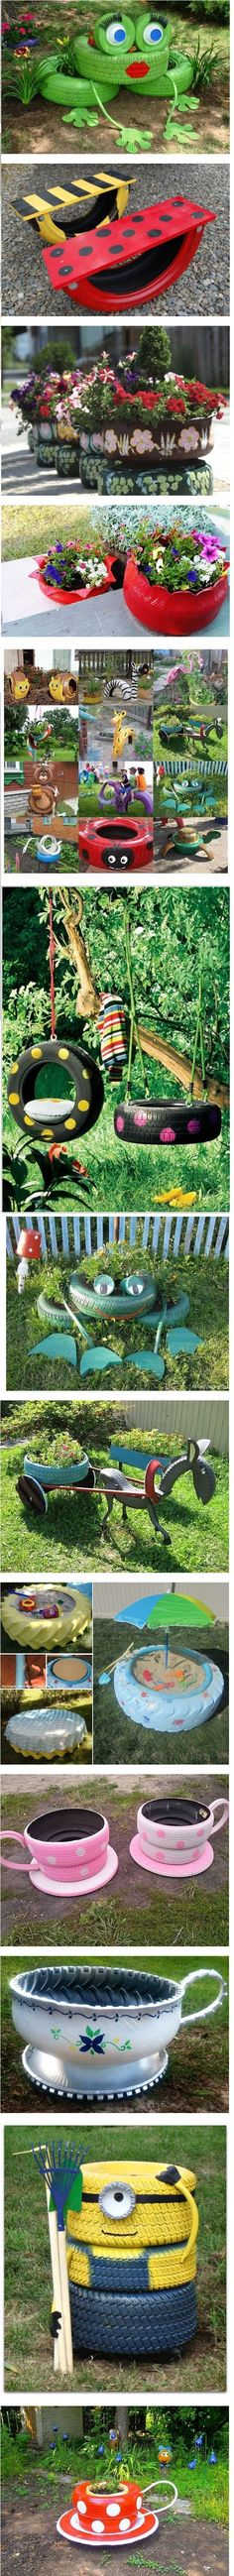 Brilliant Ways To Reuse And Recycle Old Tires Backyard Projects, Outdoor Projects, Garden Projects, Diy Projects, Outdoor Decor, Tire Craft, Tire Garden, Clay Pot People, Pot Jardin